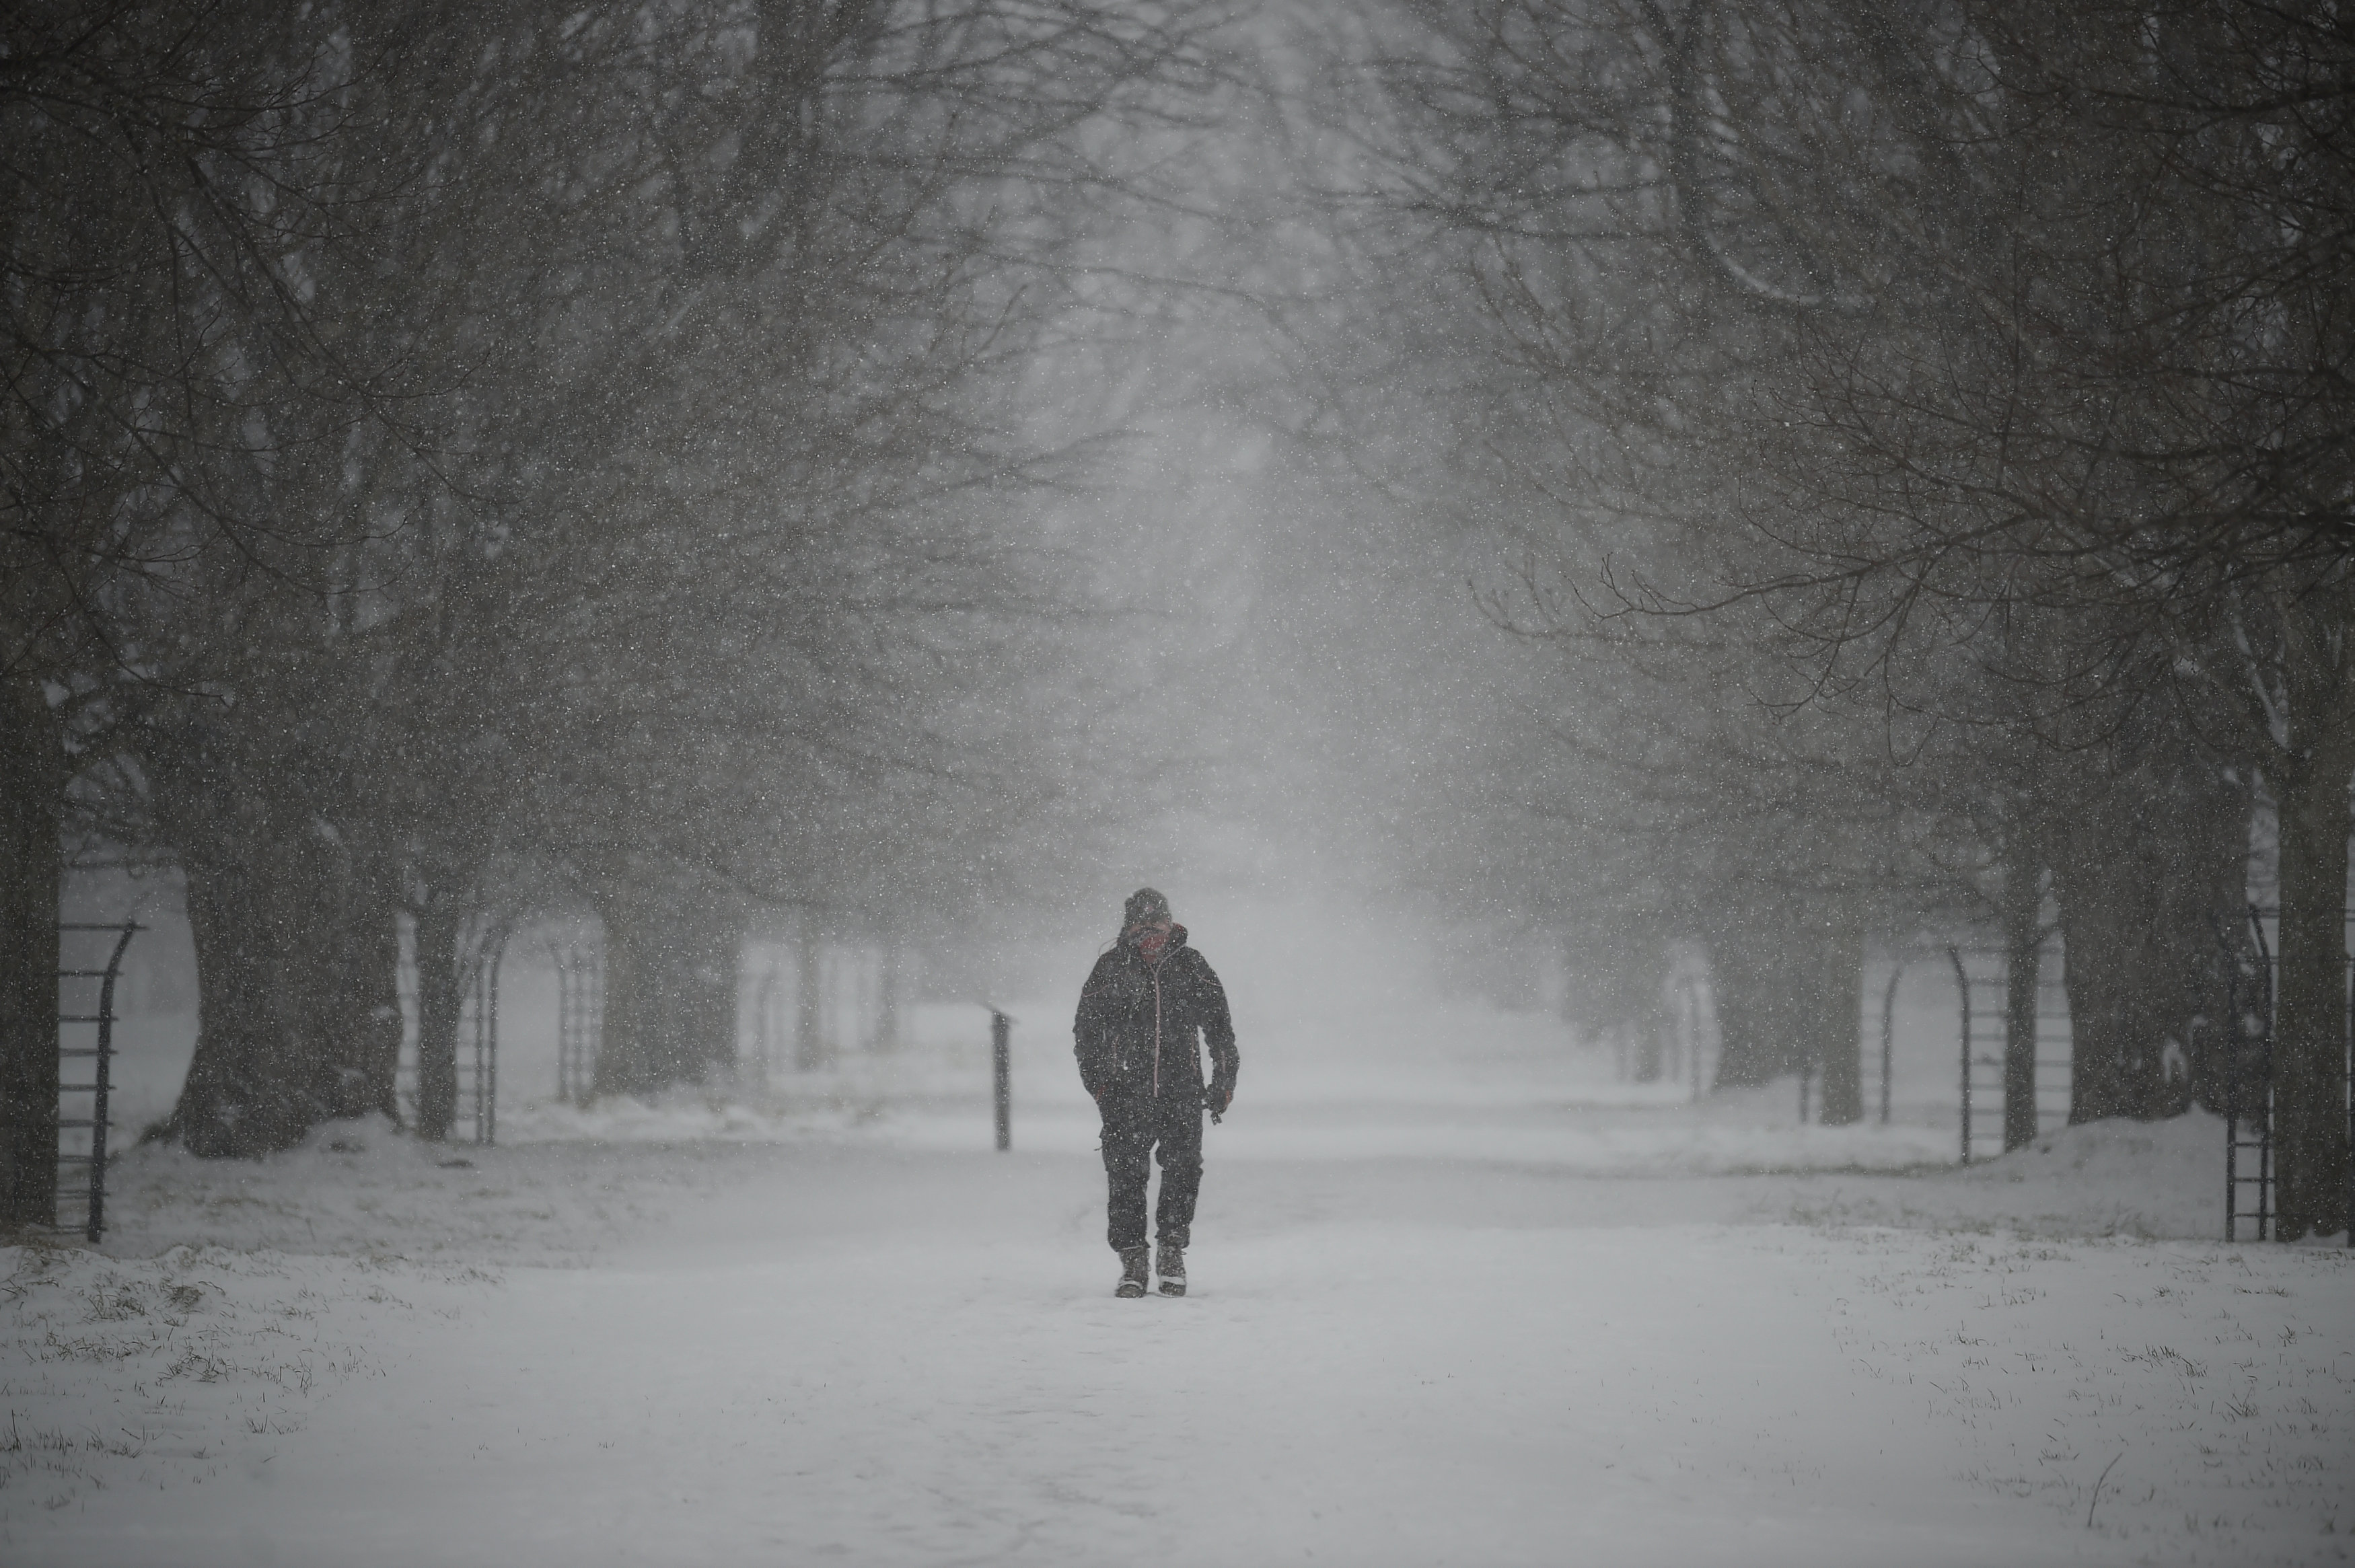 Ireland hit by worst snowstorm in 36 years